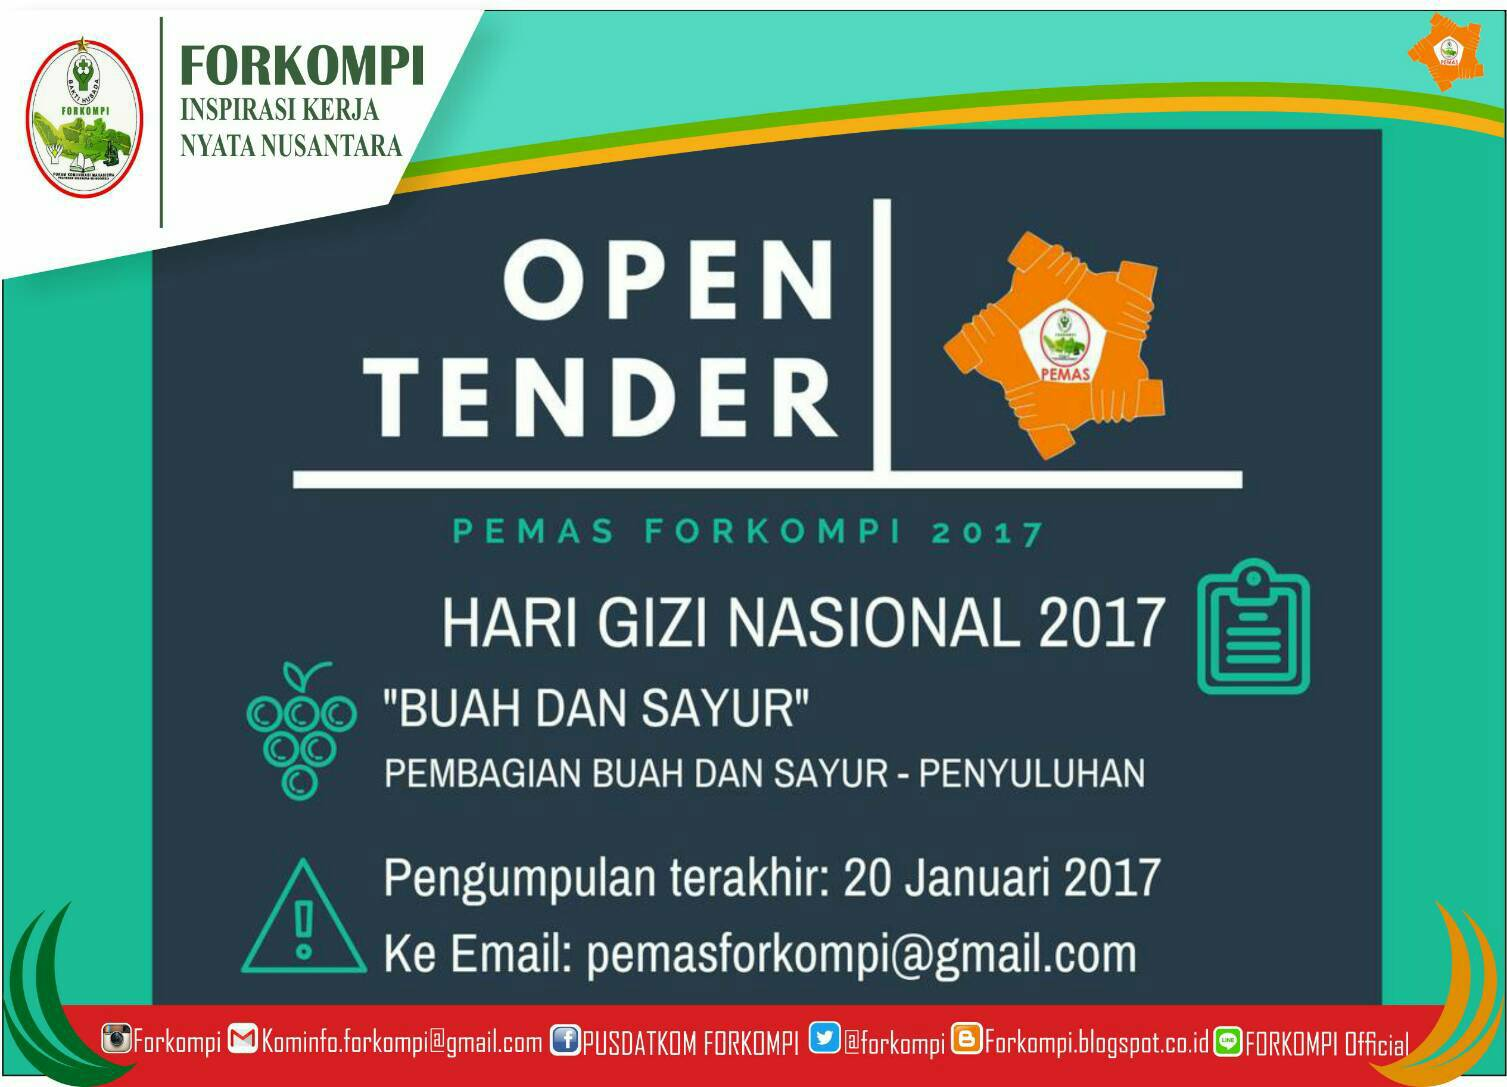 open tender Definition of open tender: a bidding process that is open to all qualified bidders  and where the sealed bids are opened in public for scrutiny and are chosen on.